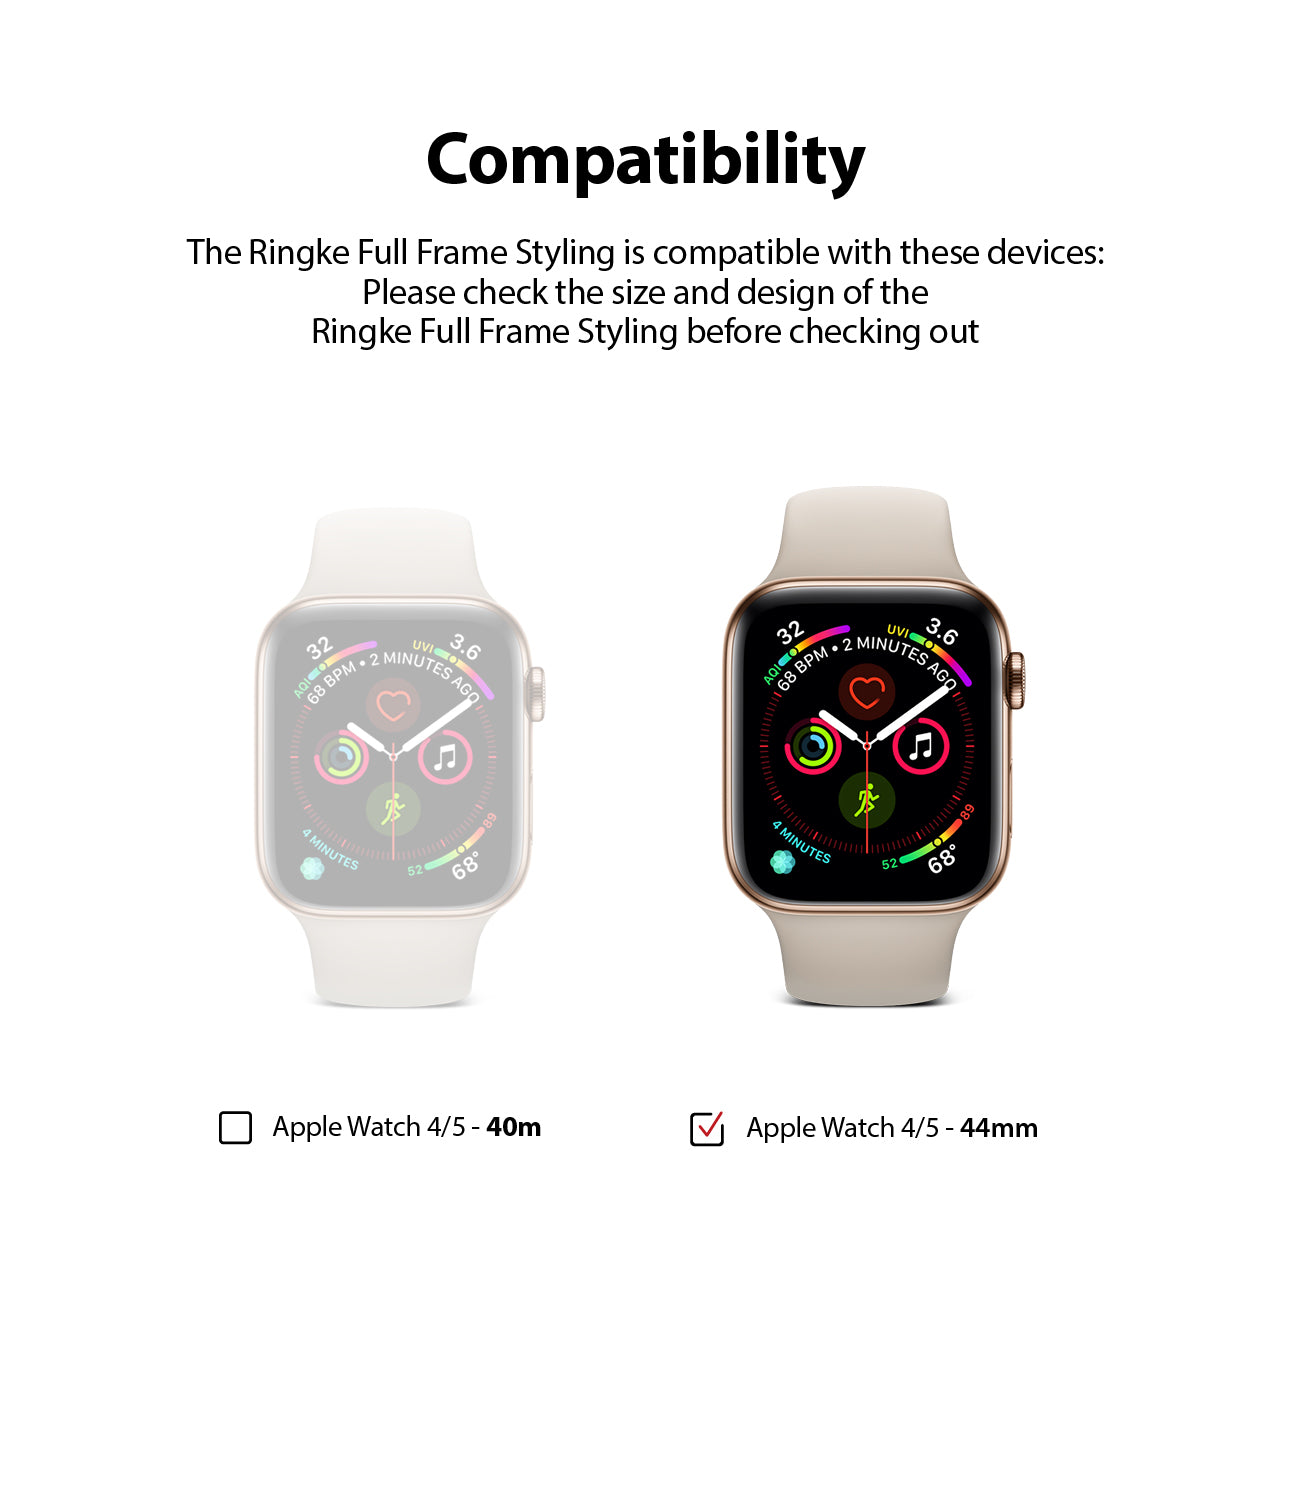 compatible with apple watch 4/5 44mm